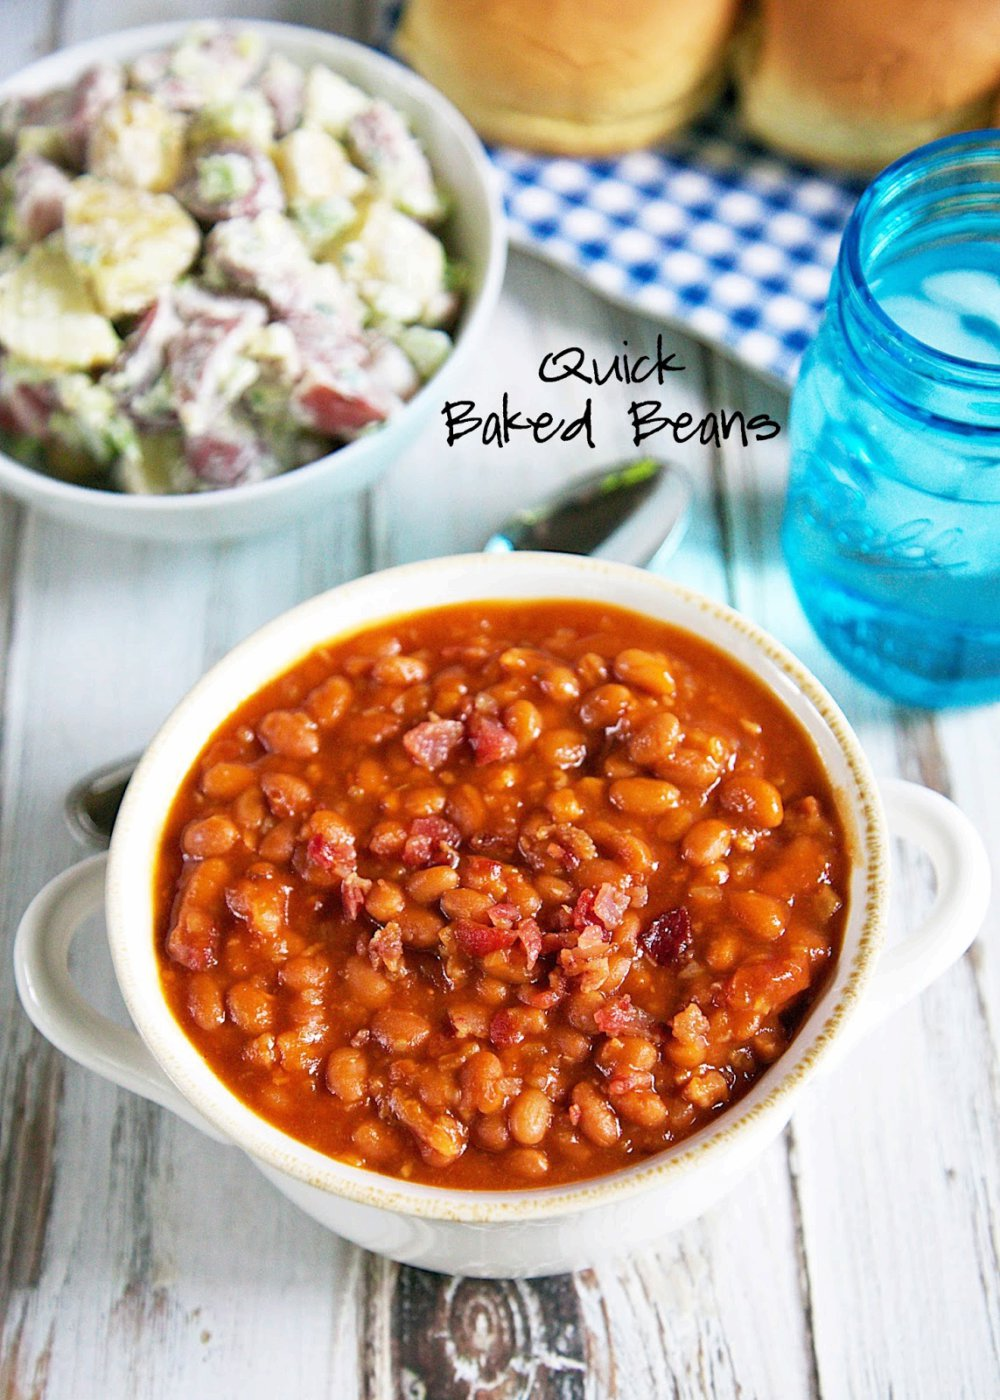 Quick Baked Beans